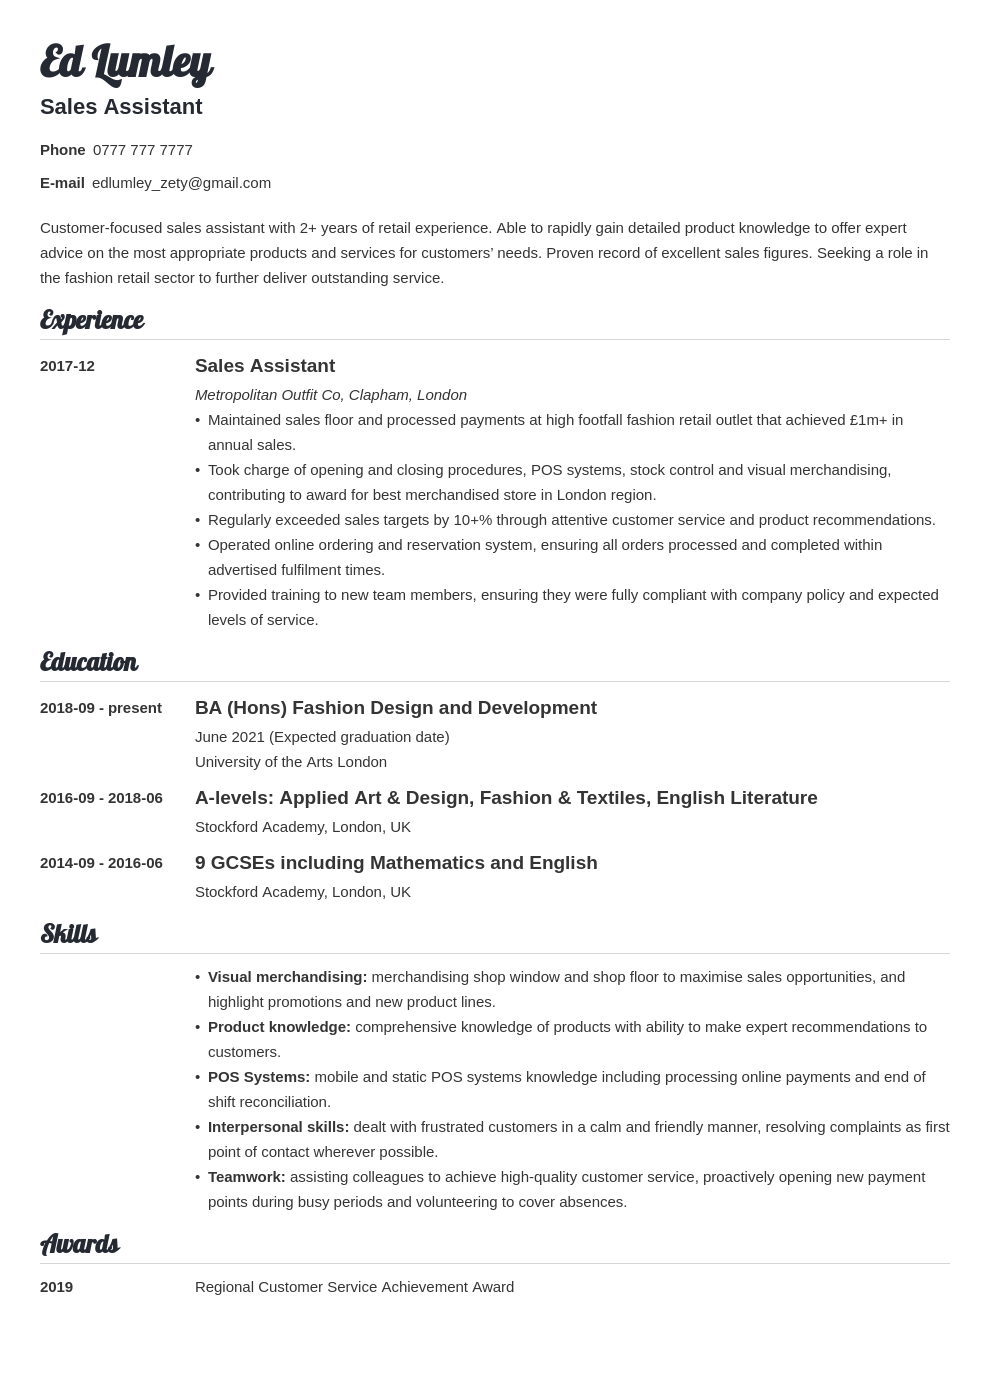 uk retail cv example template valera in 2020 Cv examples